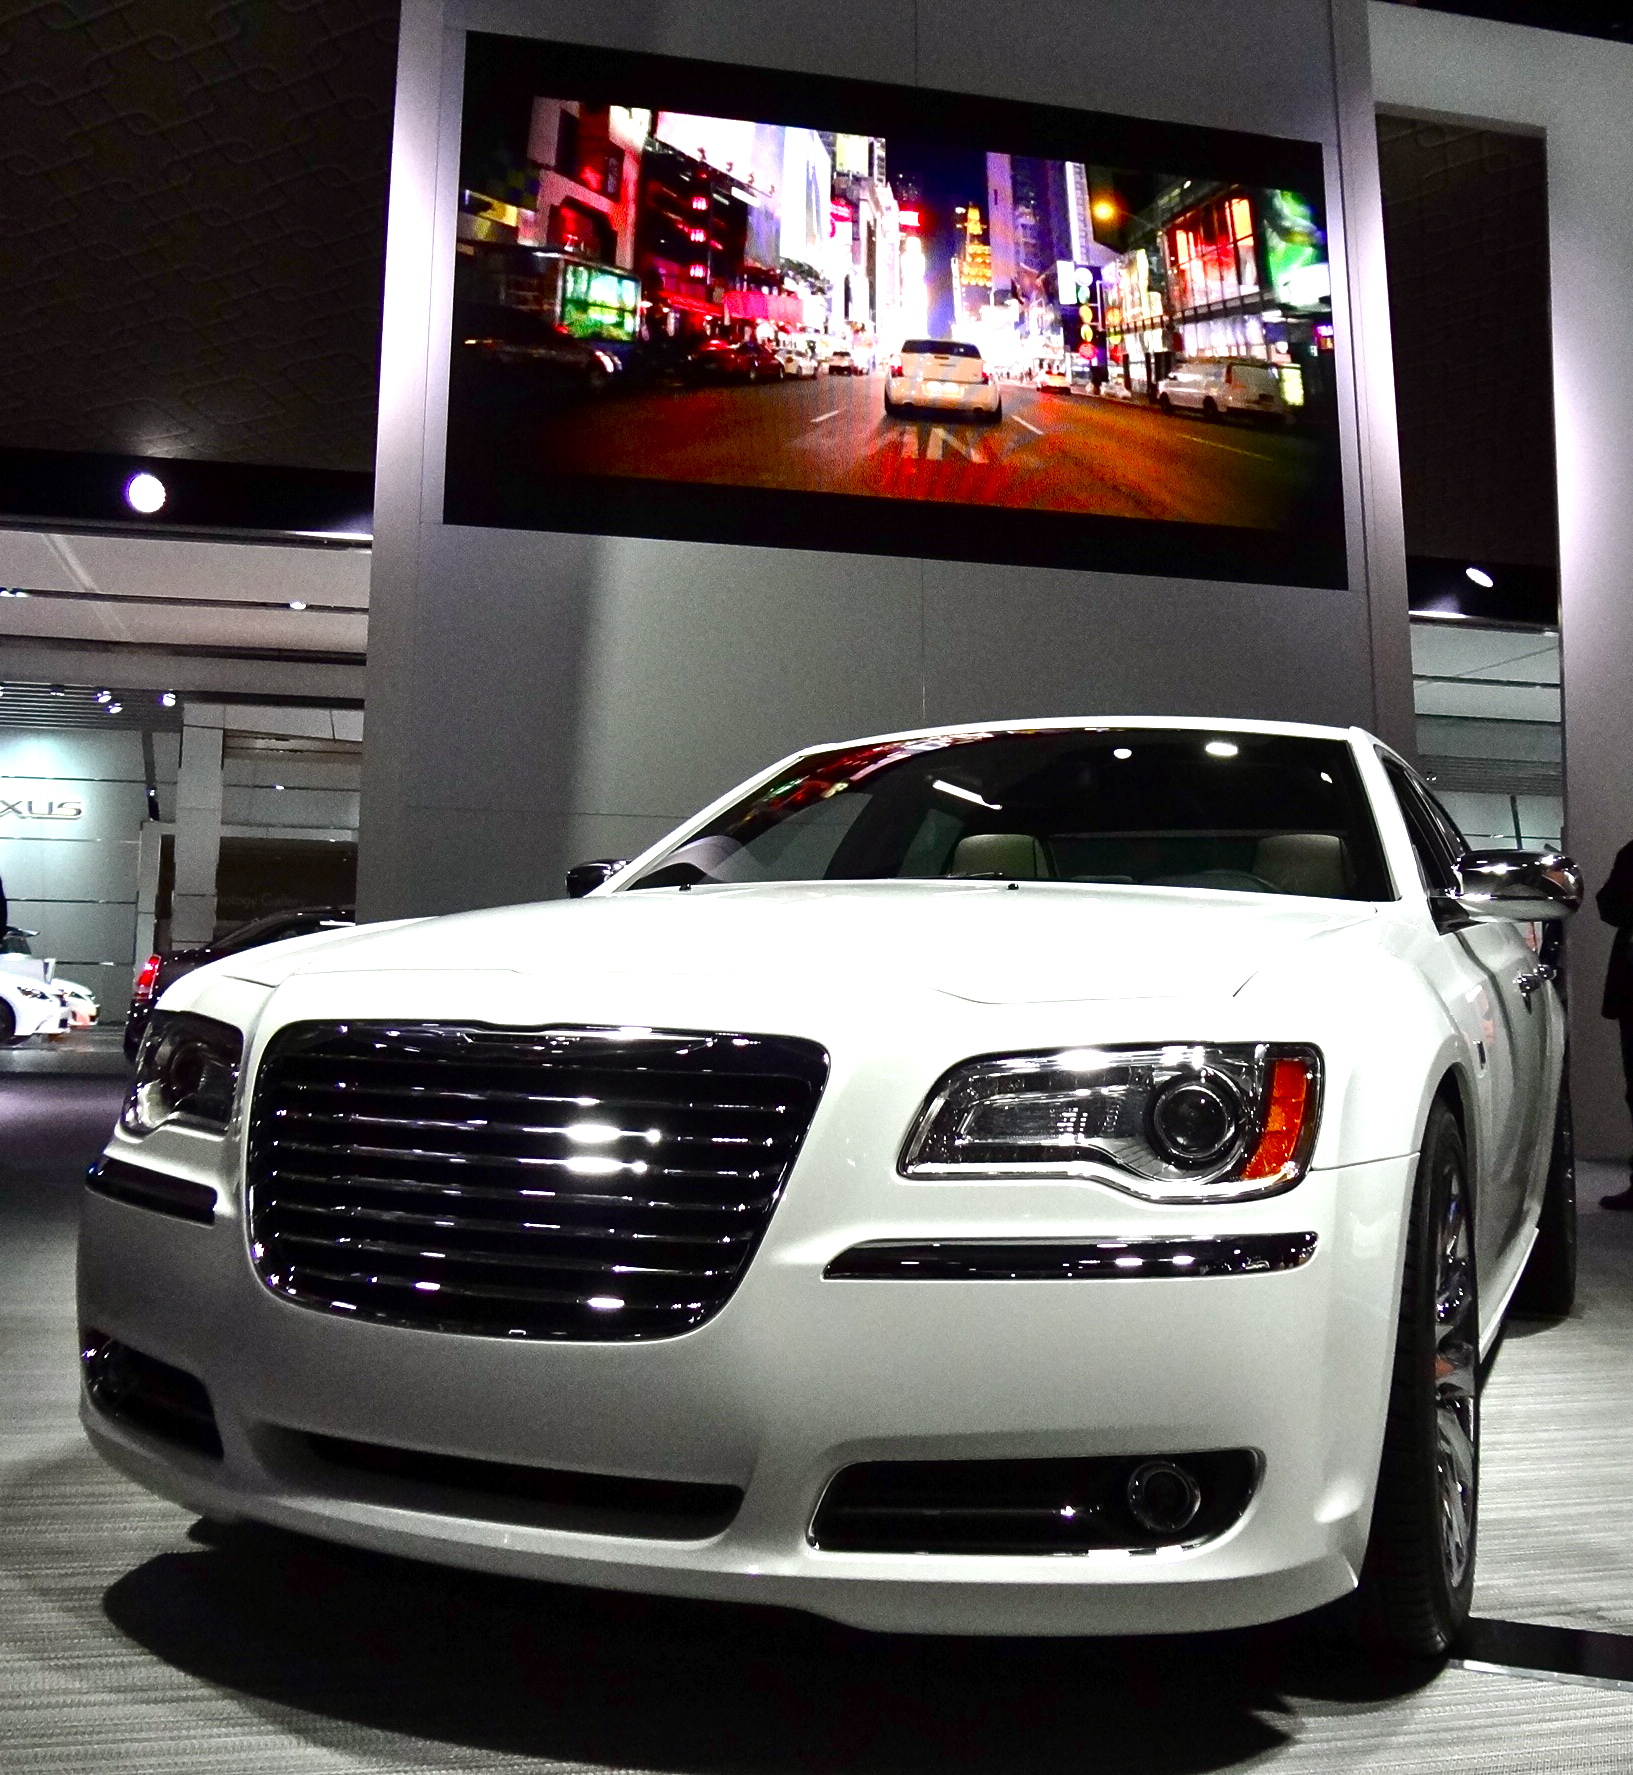 A 60-Second Pitch For Chrysler's 300 Motown Edition